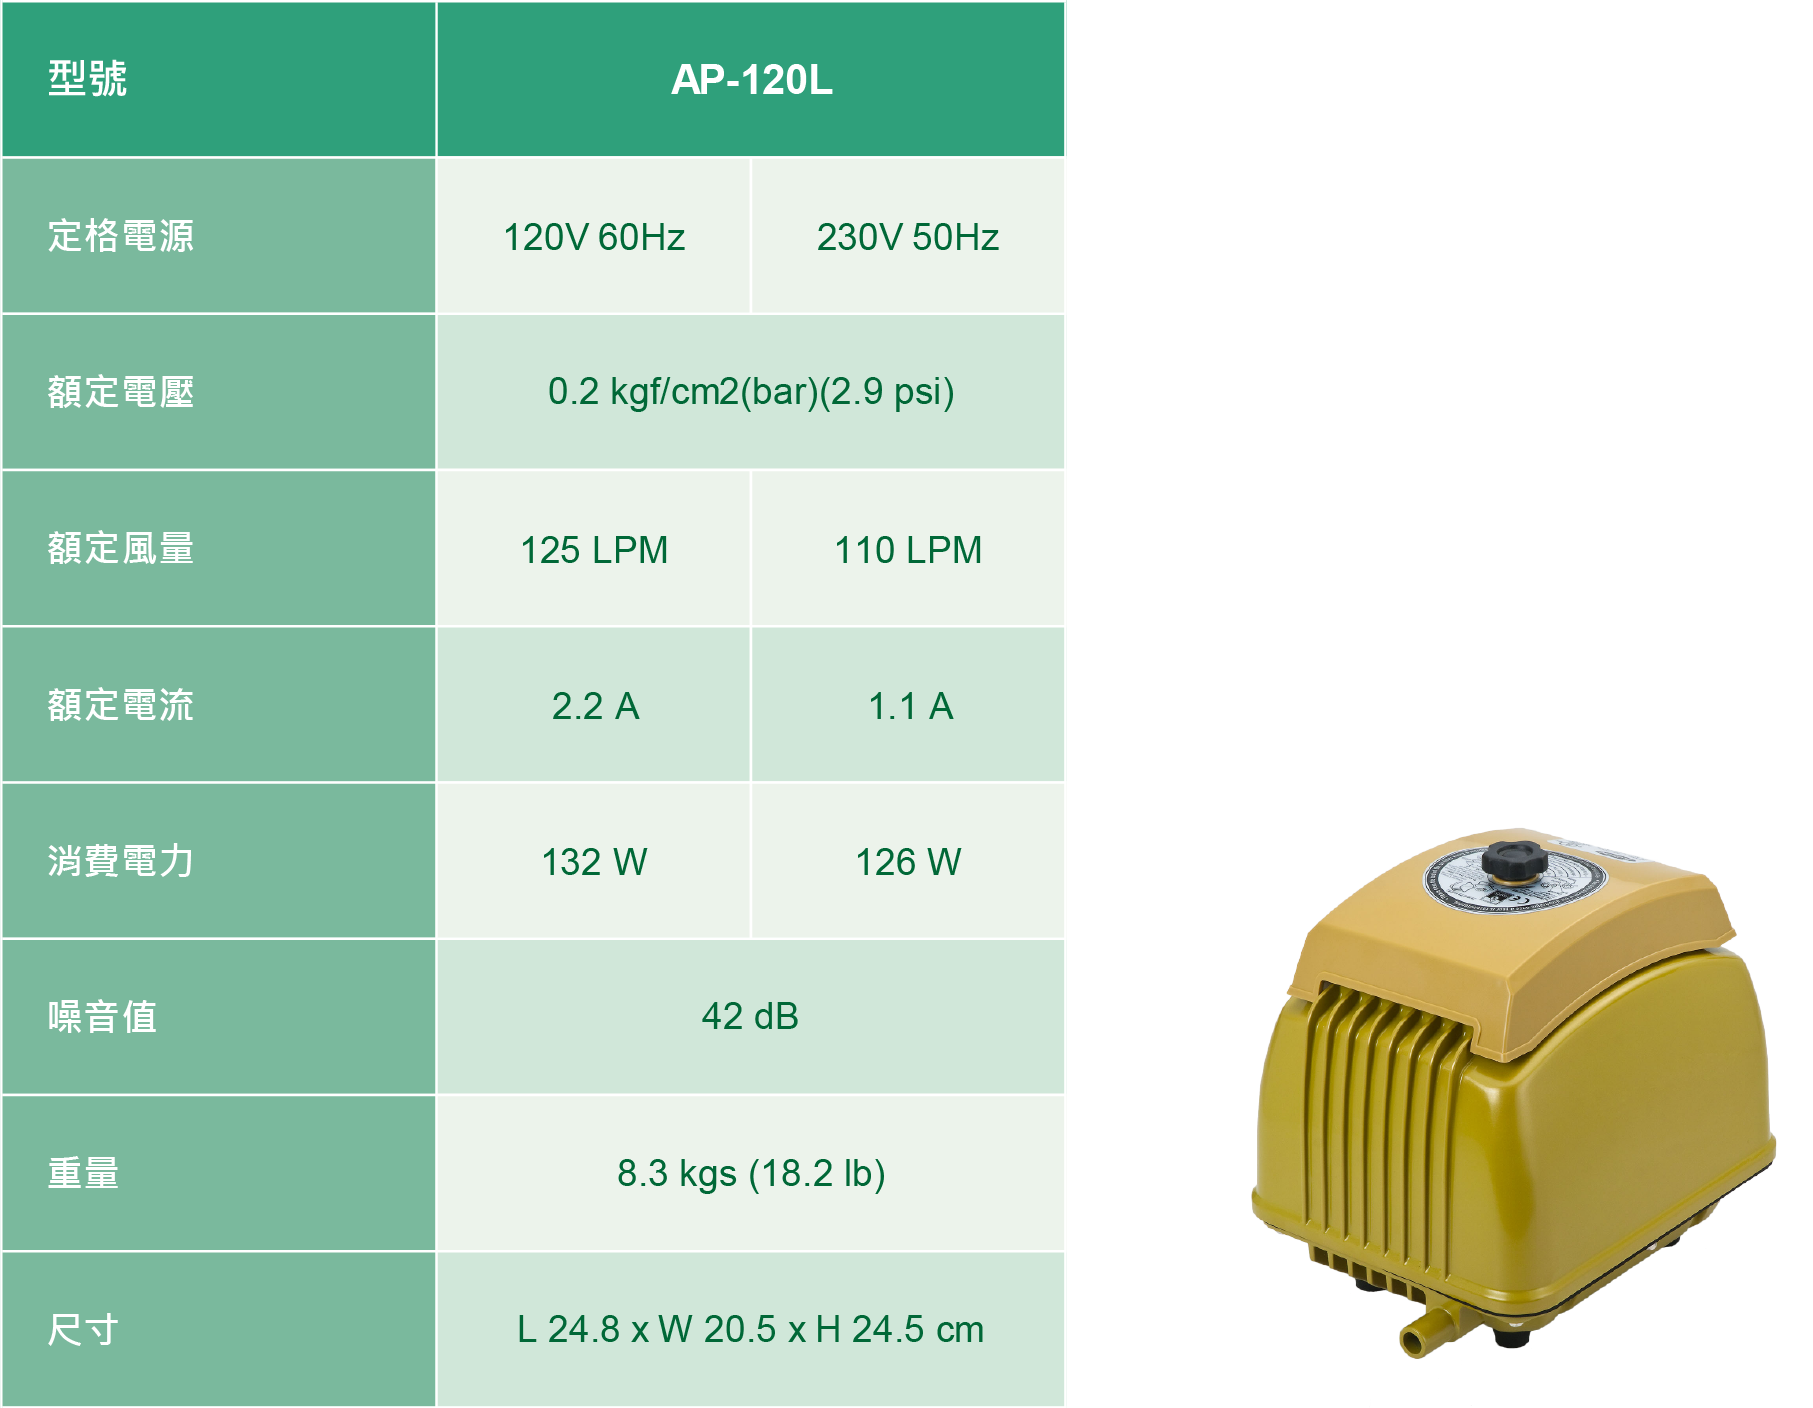 Linear Air Pumps AP-120L Performance